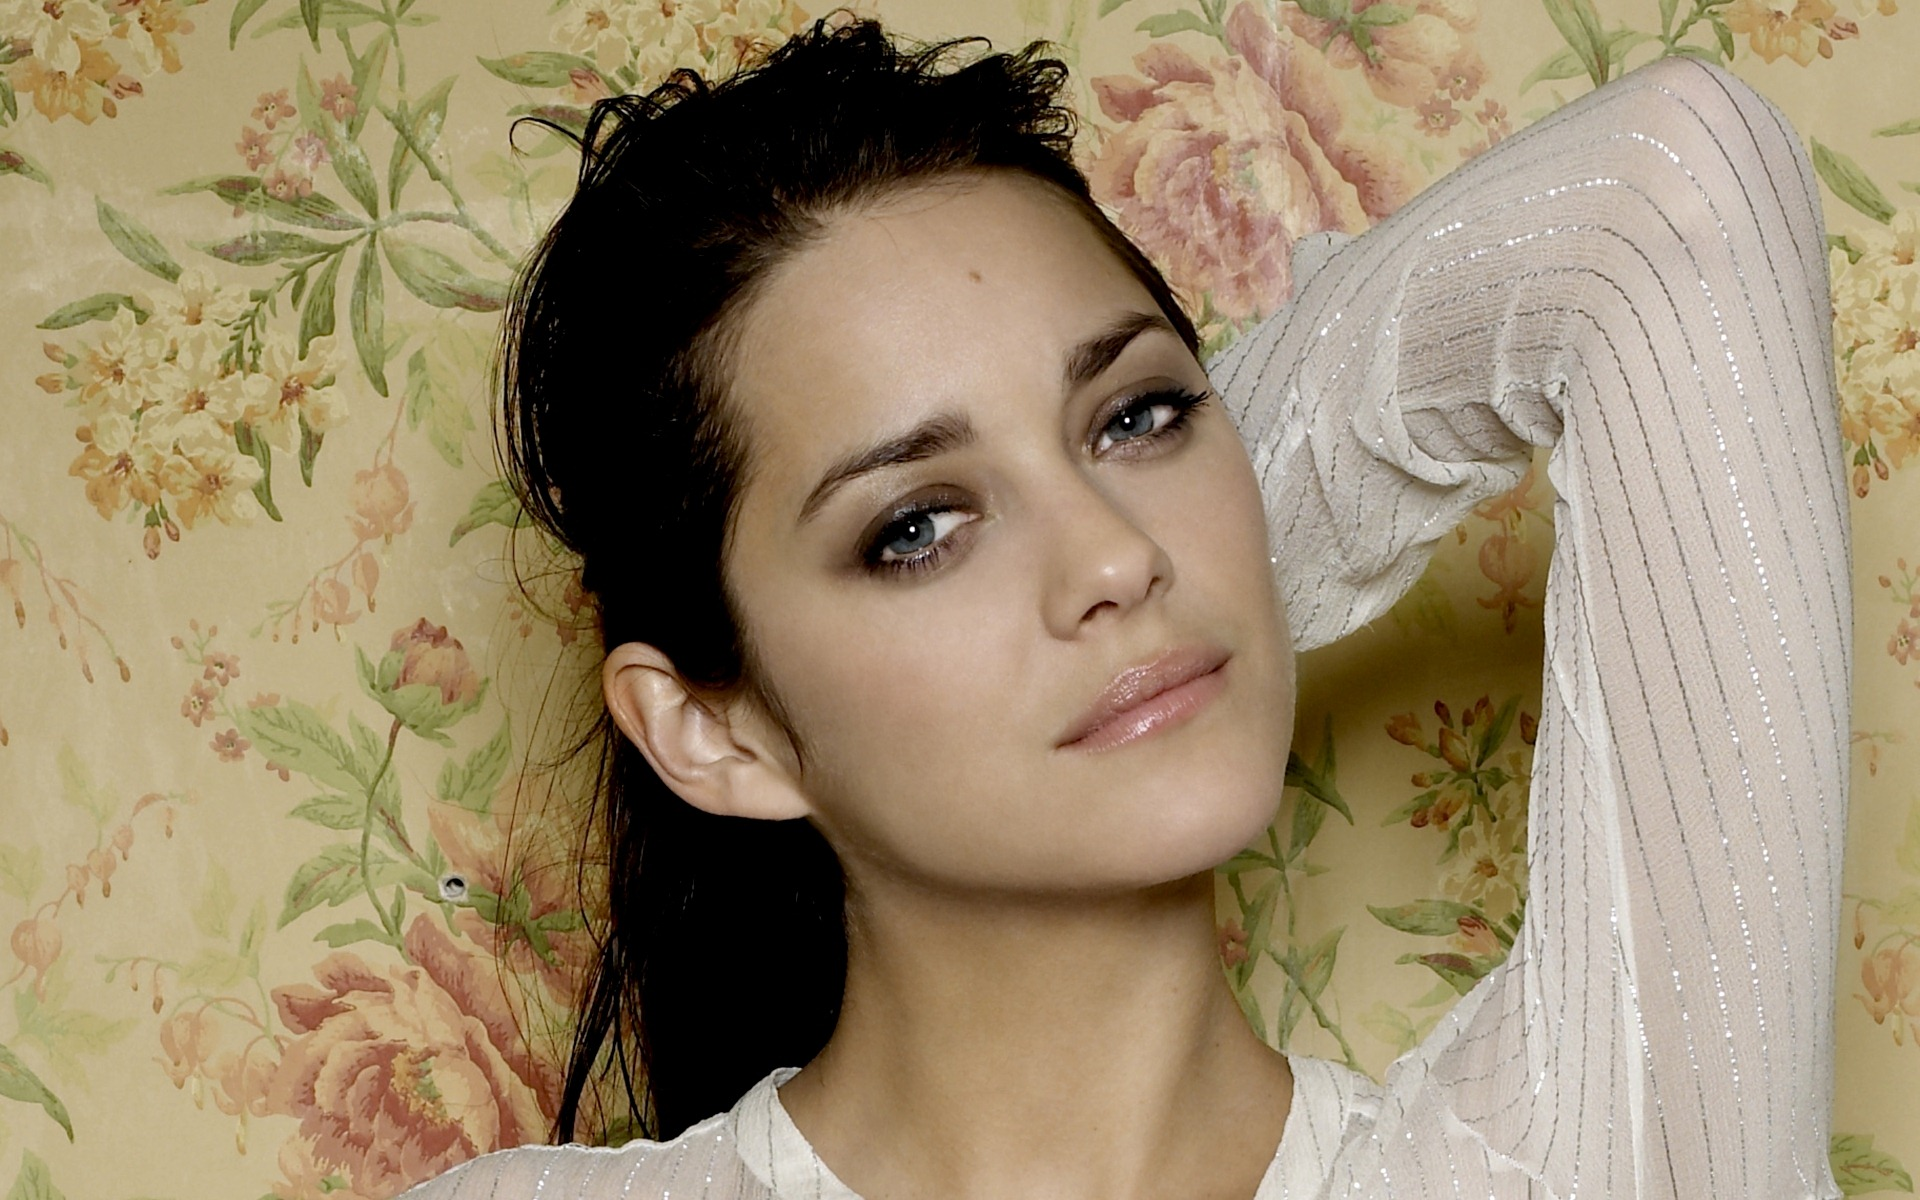 http://images6.fanpop.com/image/photos/32500000/MC-2012-marion-cotillard-32532550-1920-1200.jpg